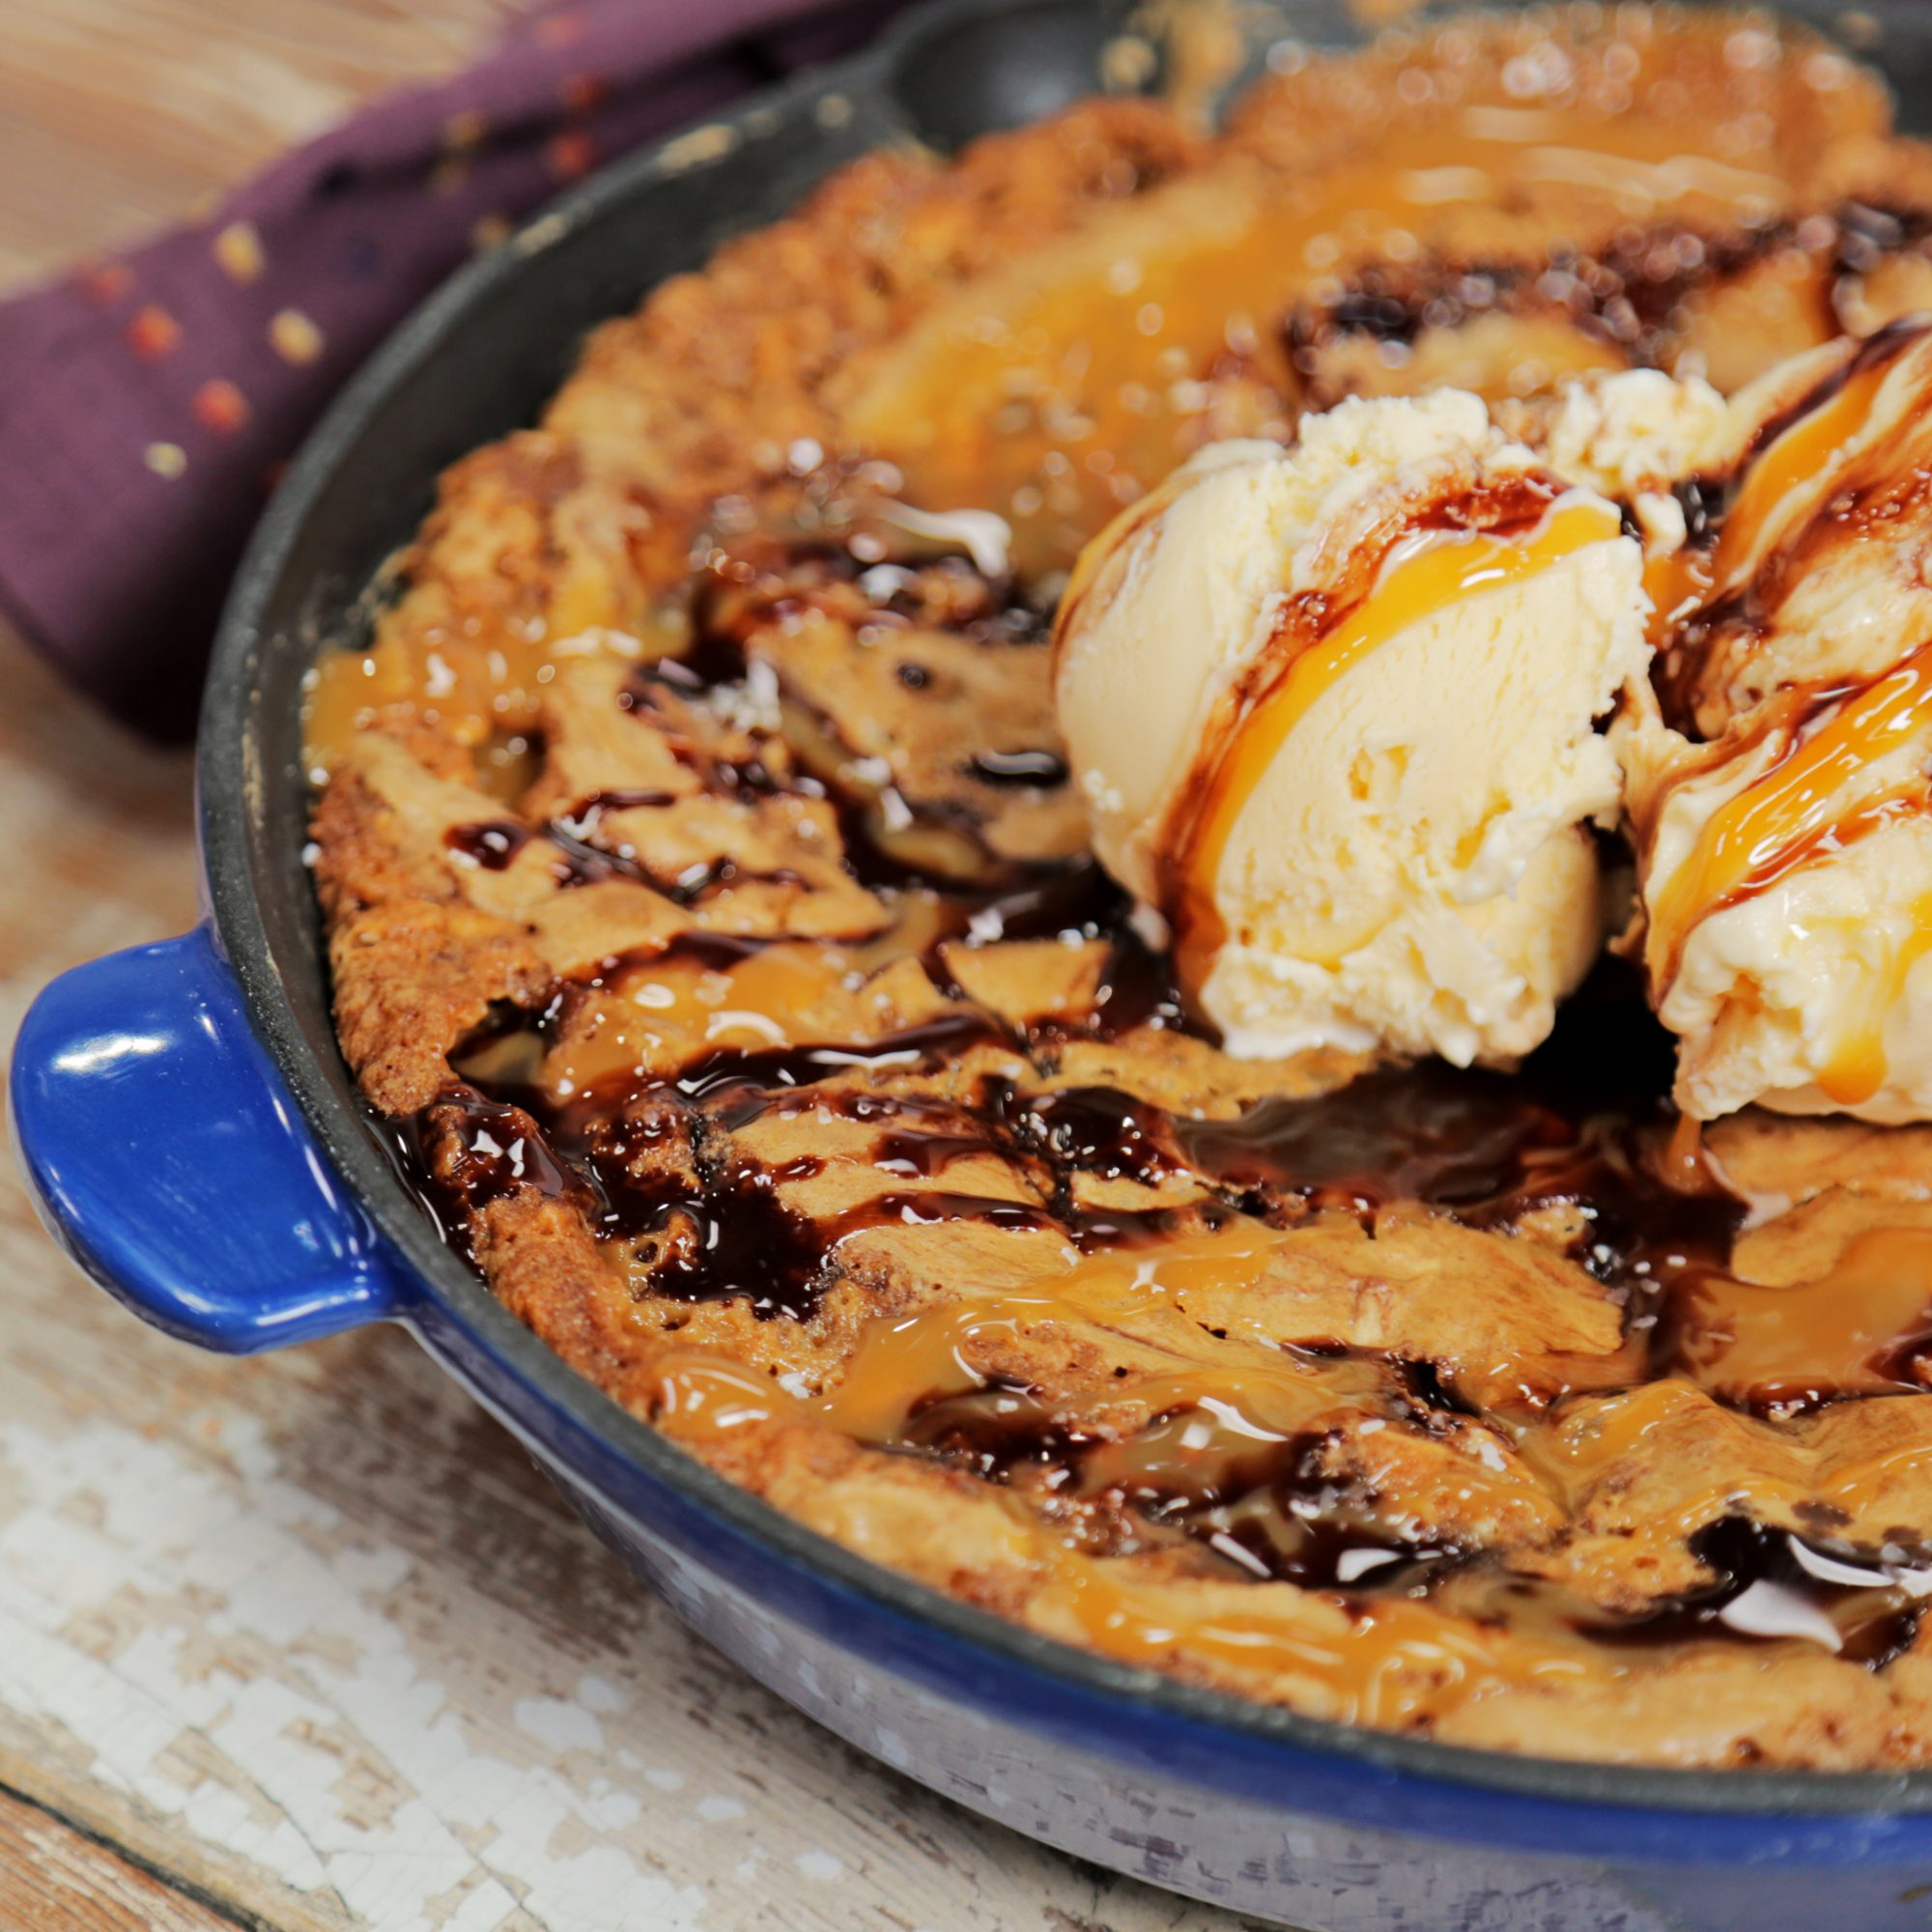 Oatmeal Chocolate Chunk Skillet Cookie with Salted Caramel